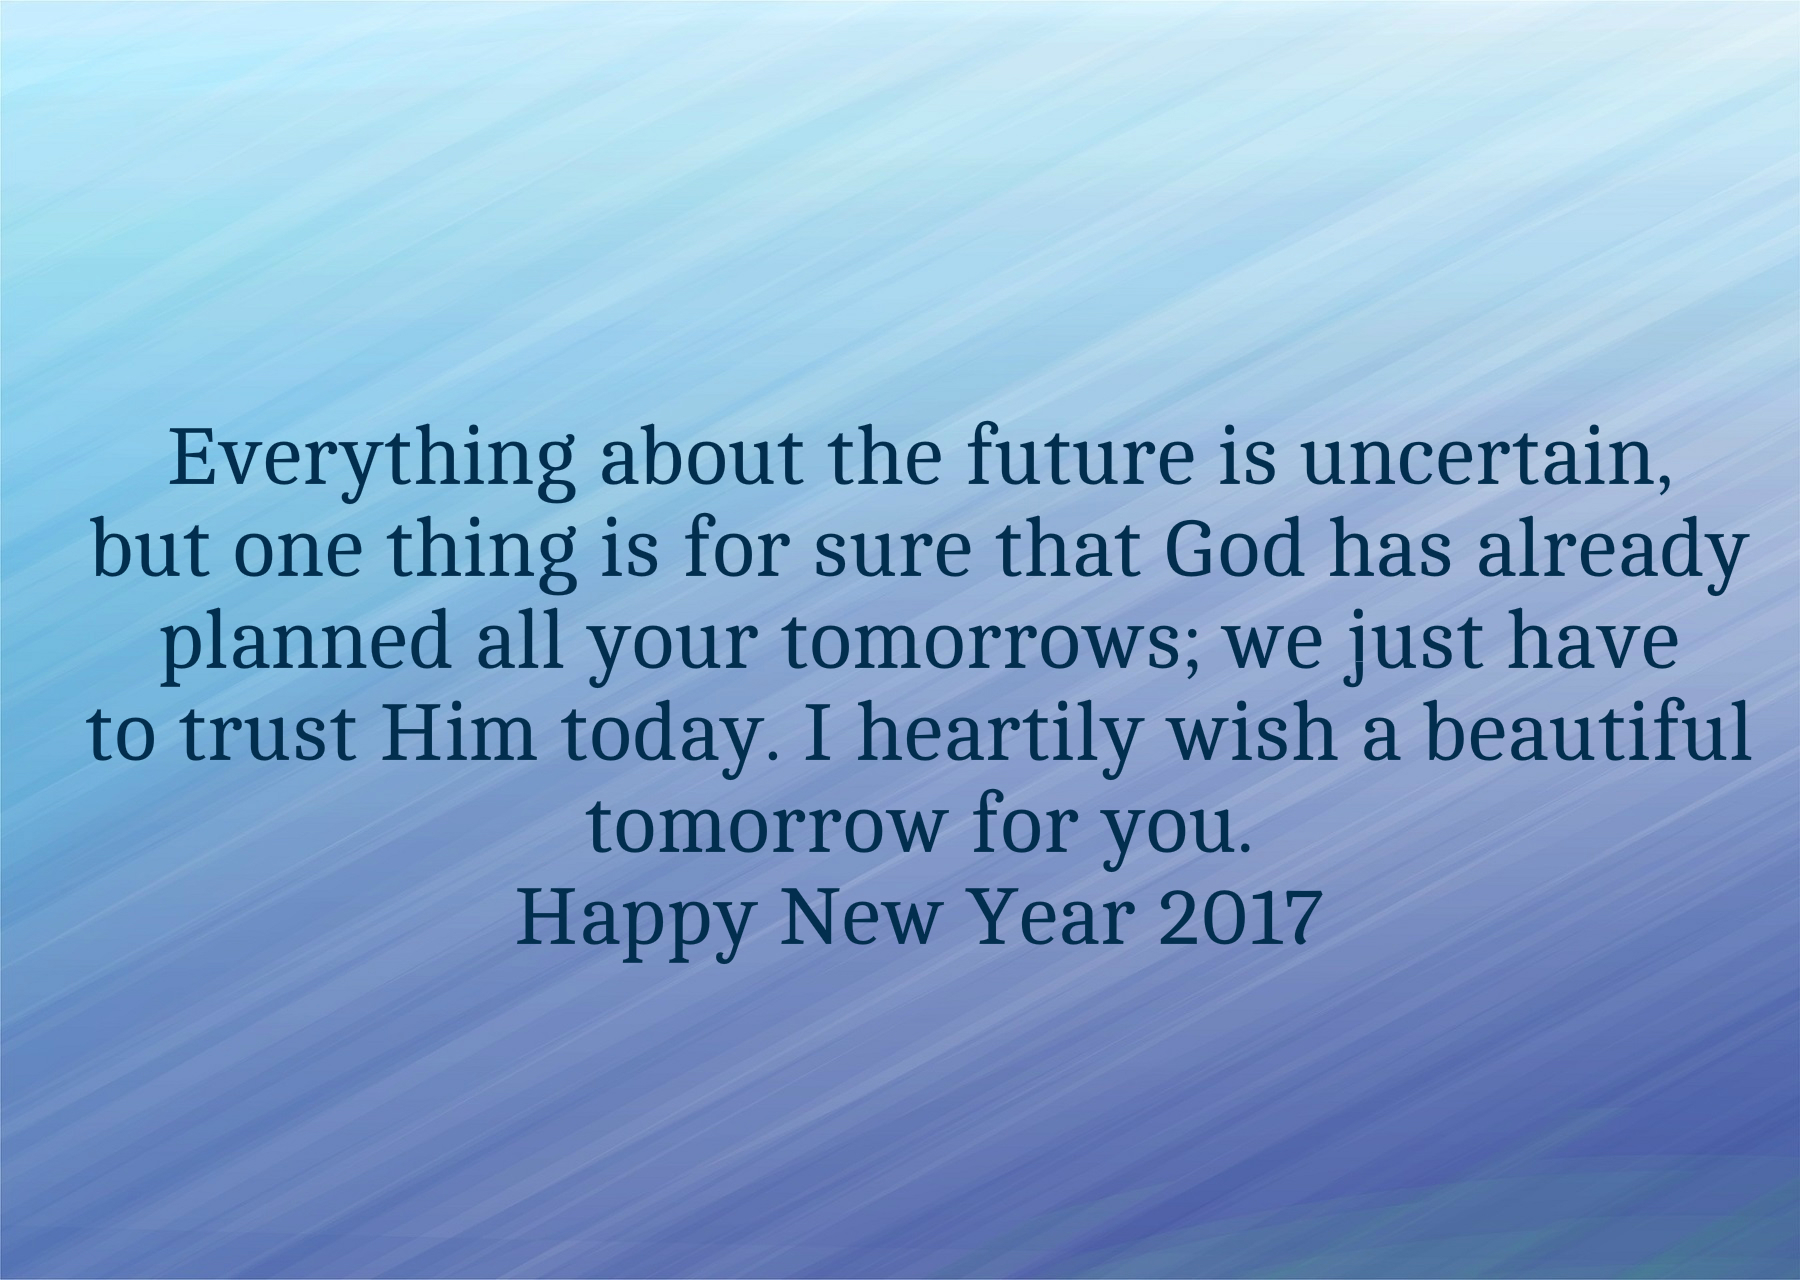 that god has already planned all your tomorrows we just have to trust him today i heartily wish a beautiful tomorrow for you happy new year 2019